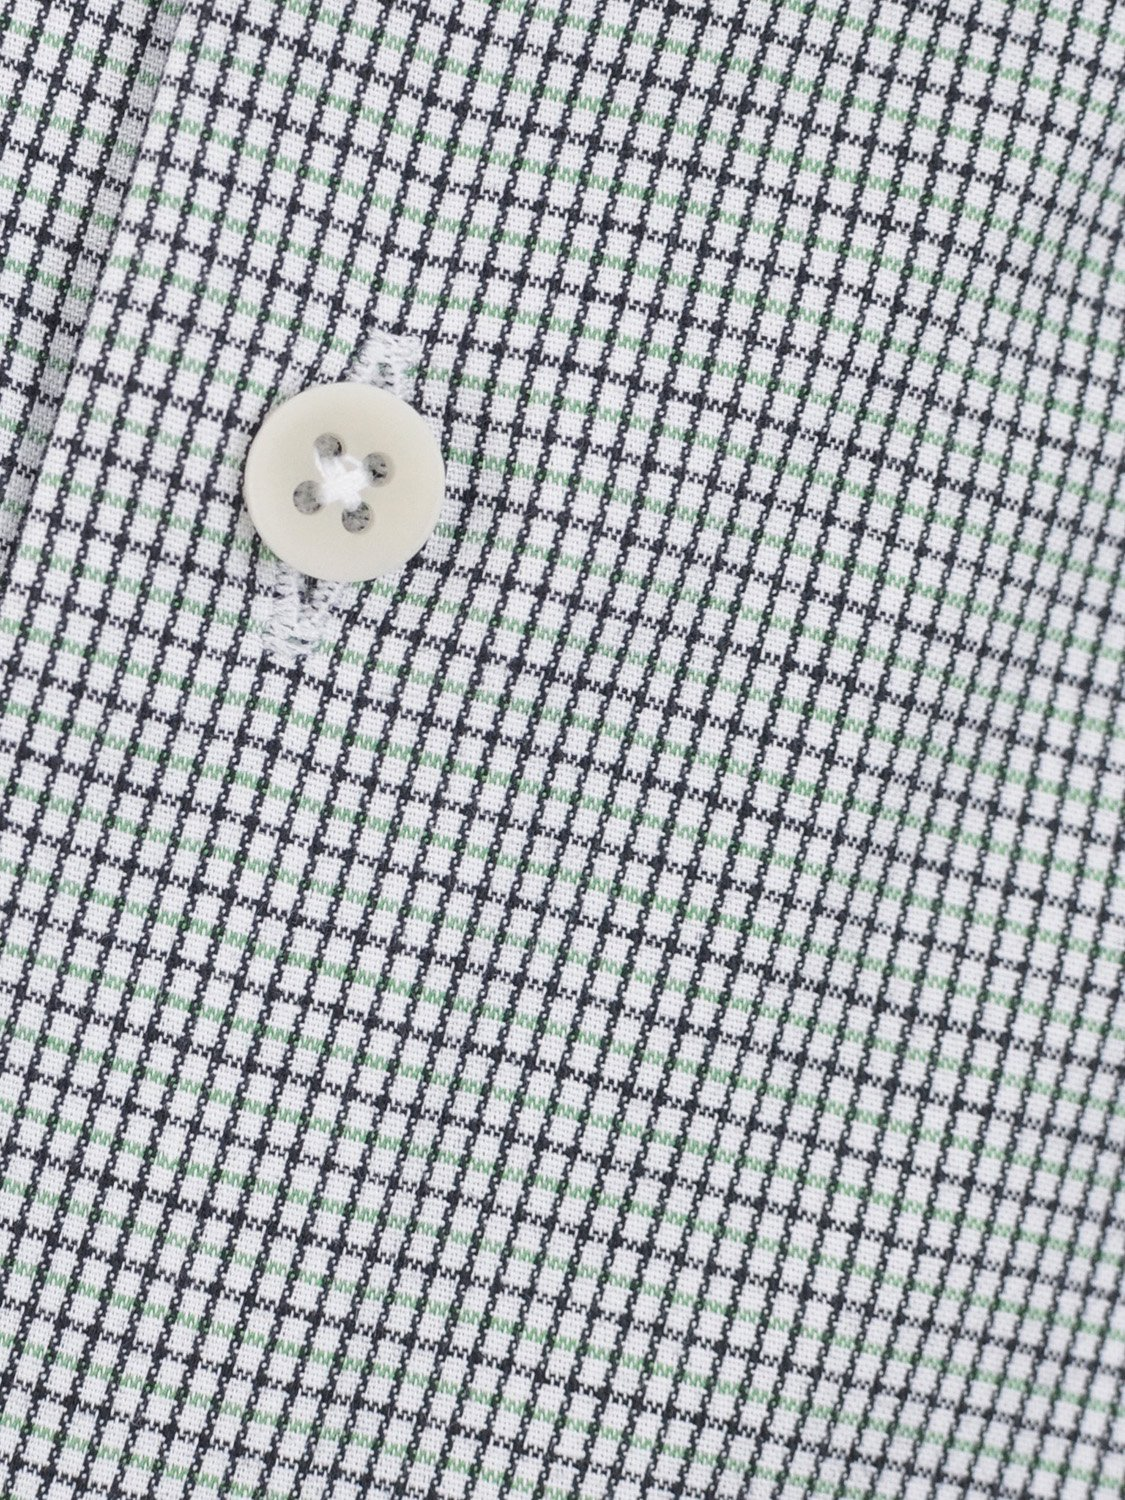 carpasus sustainable organic cotton tailor-made shirt black green check. Nachhaltiges Carpasus Masshemd aus Bio Baumwolle in Karo Schwarz Grün